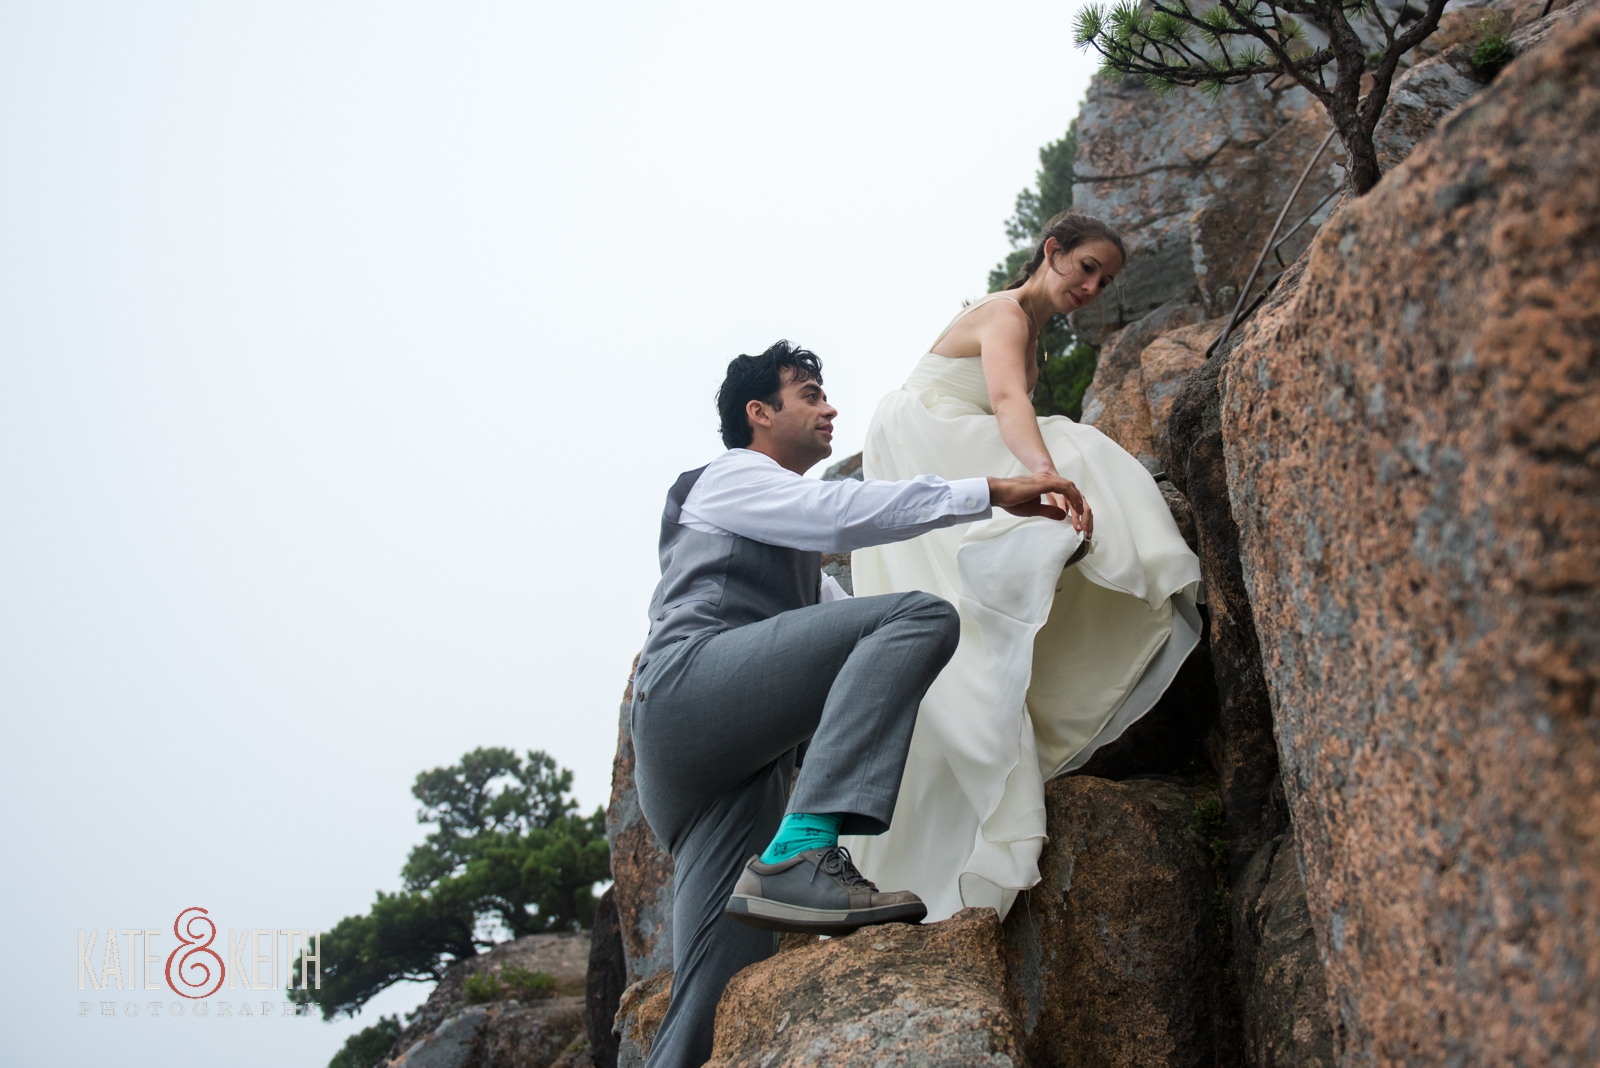 Bride and groom hiking in wedding attire, adventurous couple, adventure wedding, Beehive Trail, Acadia National Park